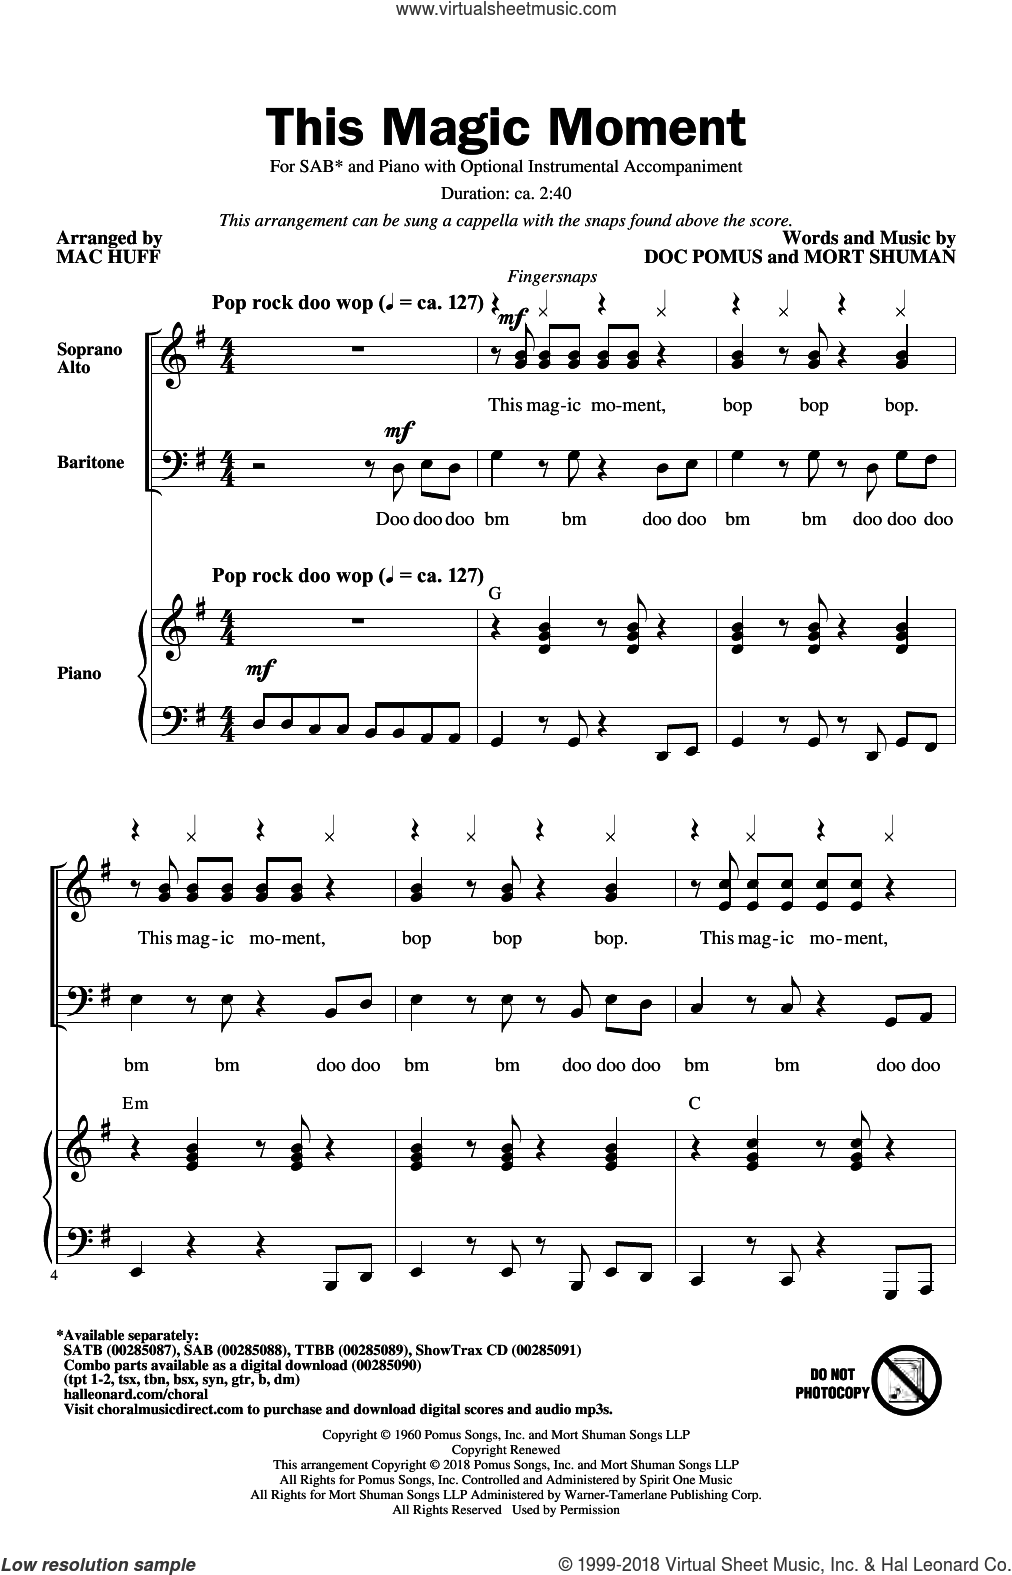 This Magic Moment (Arr. Mac Huff) sheet music for choir (SAB: soprano, alto, bass) by Ben E. King & The Drifters, Mac Huff, Jay & The Americans, Doc Pomus and Mort Shuman, wedding score, intermediate skill level